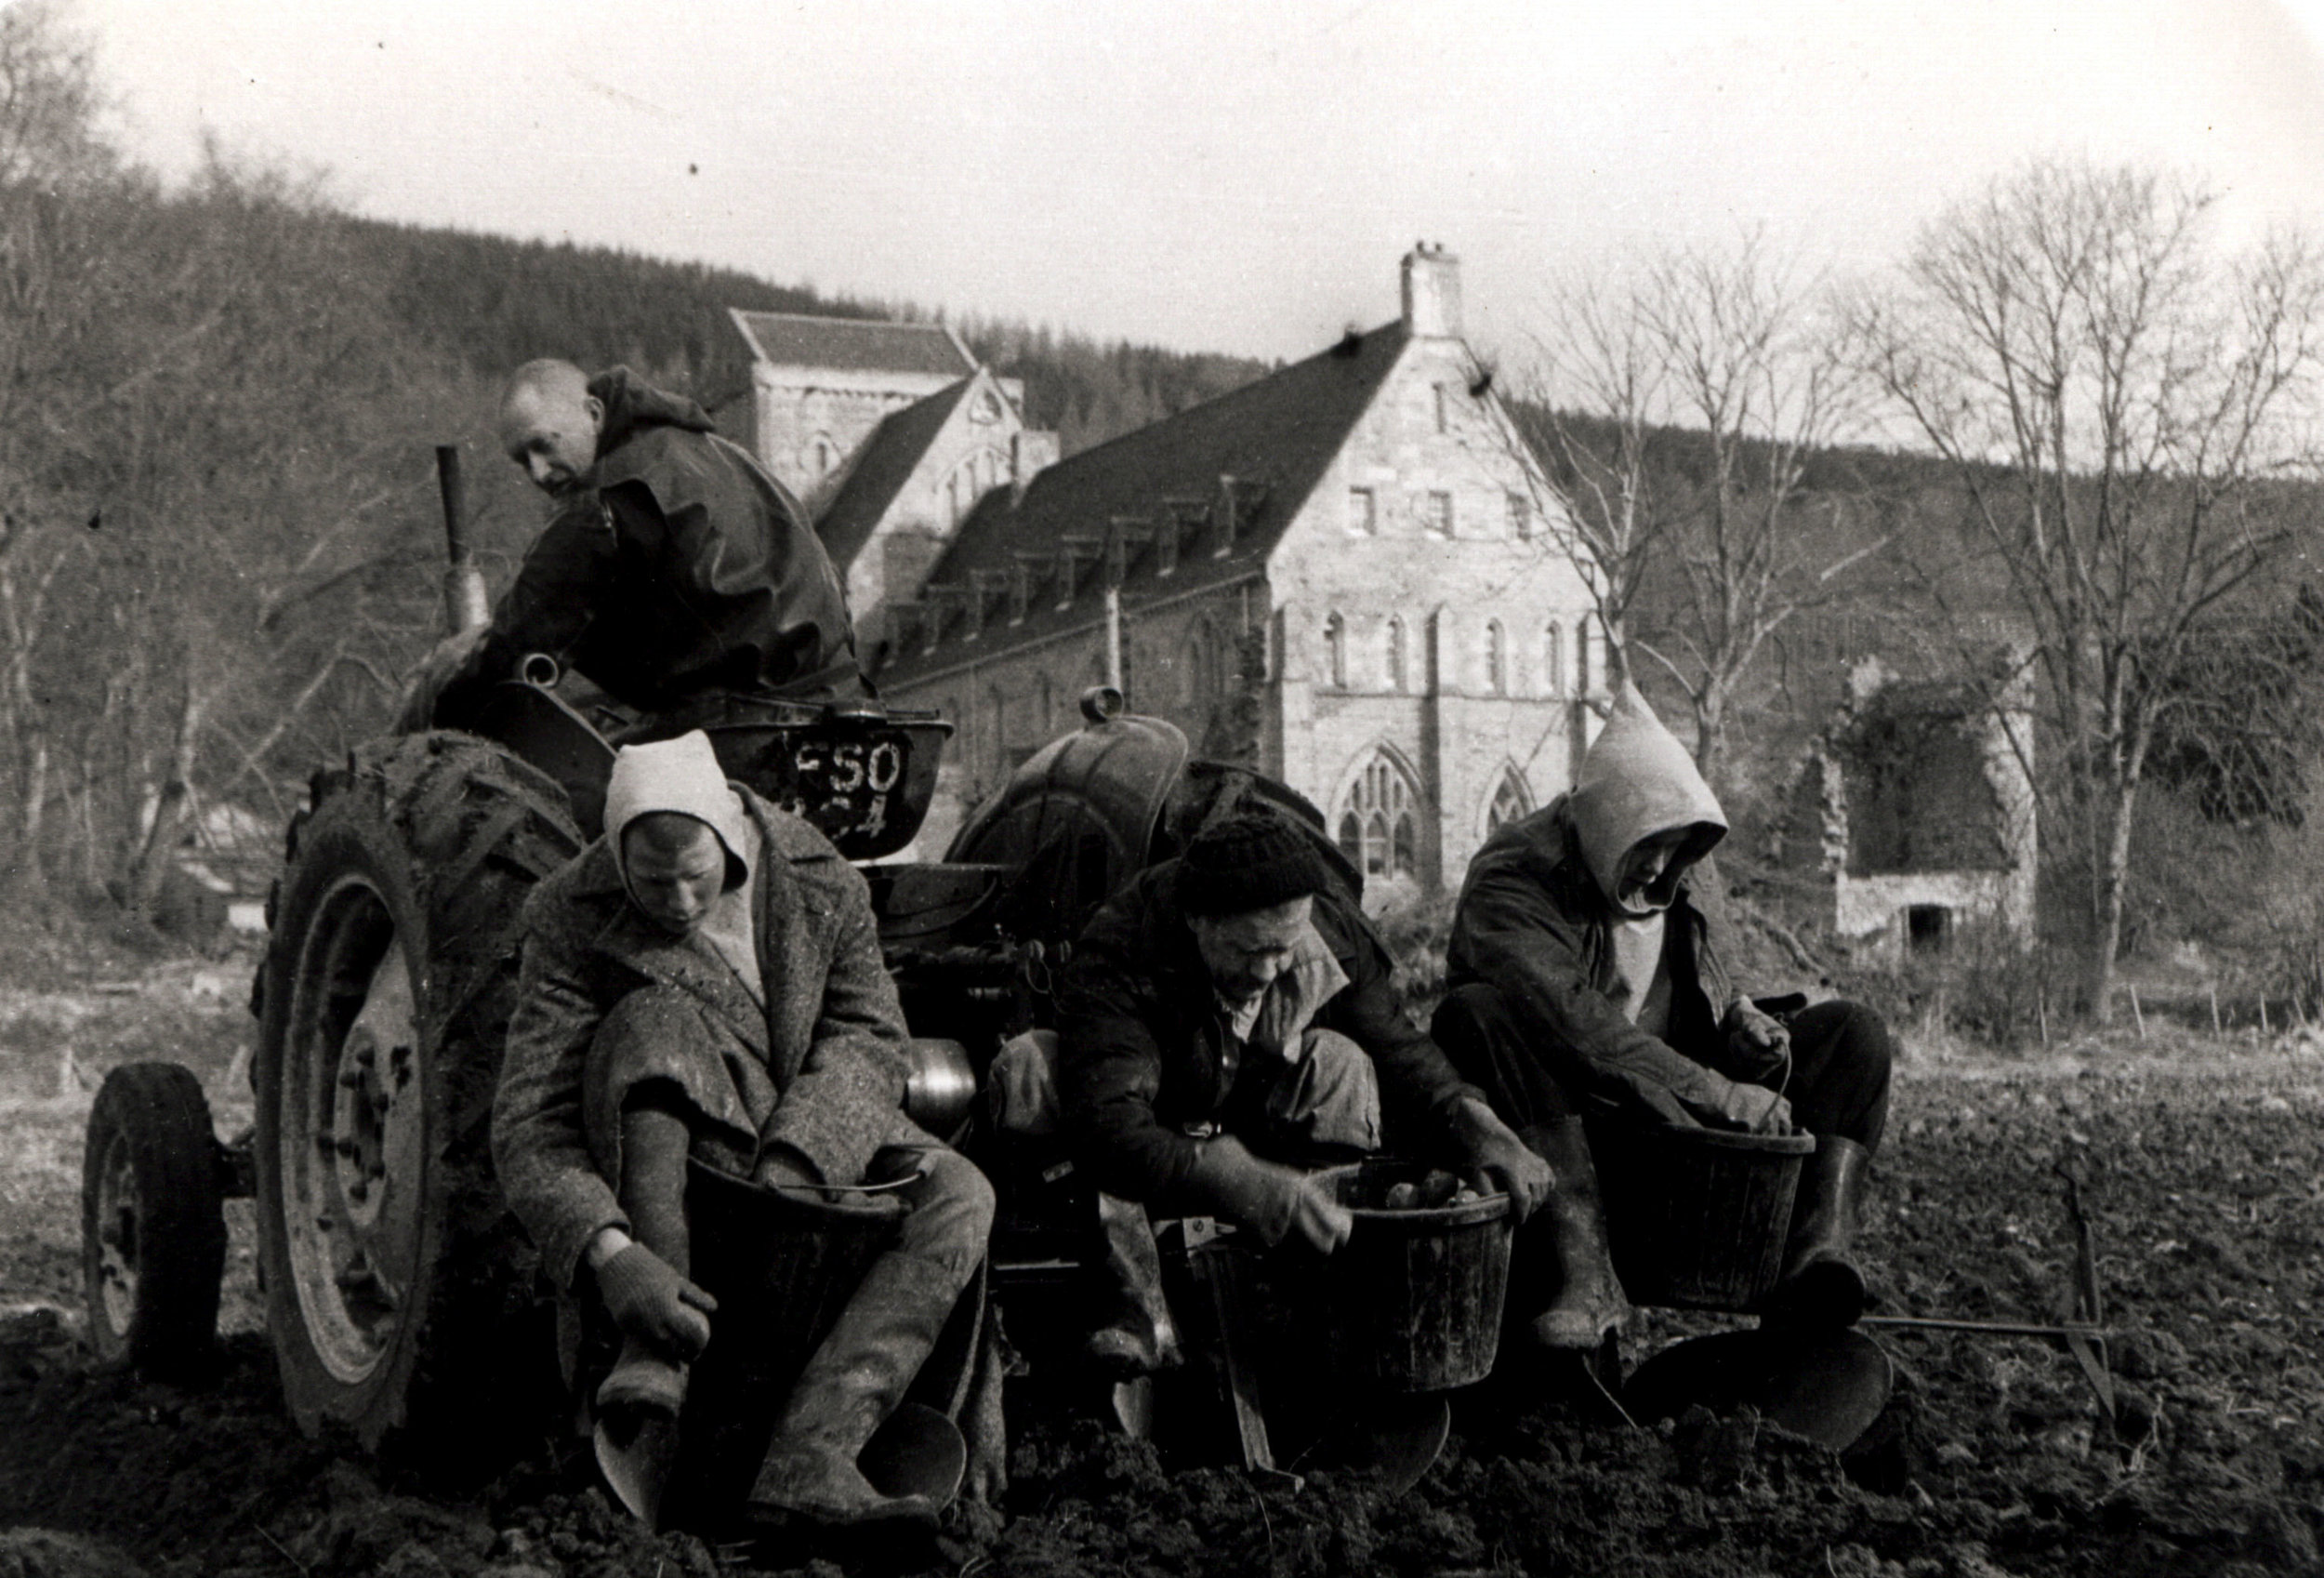 On the tractor 1970s.jpg